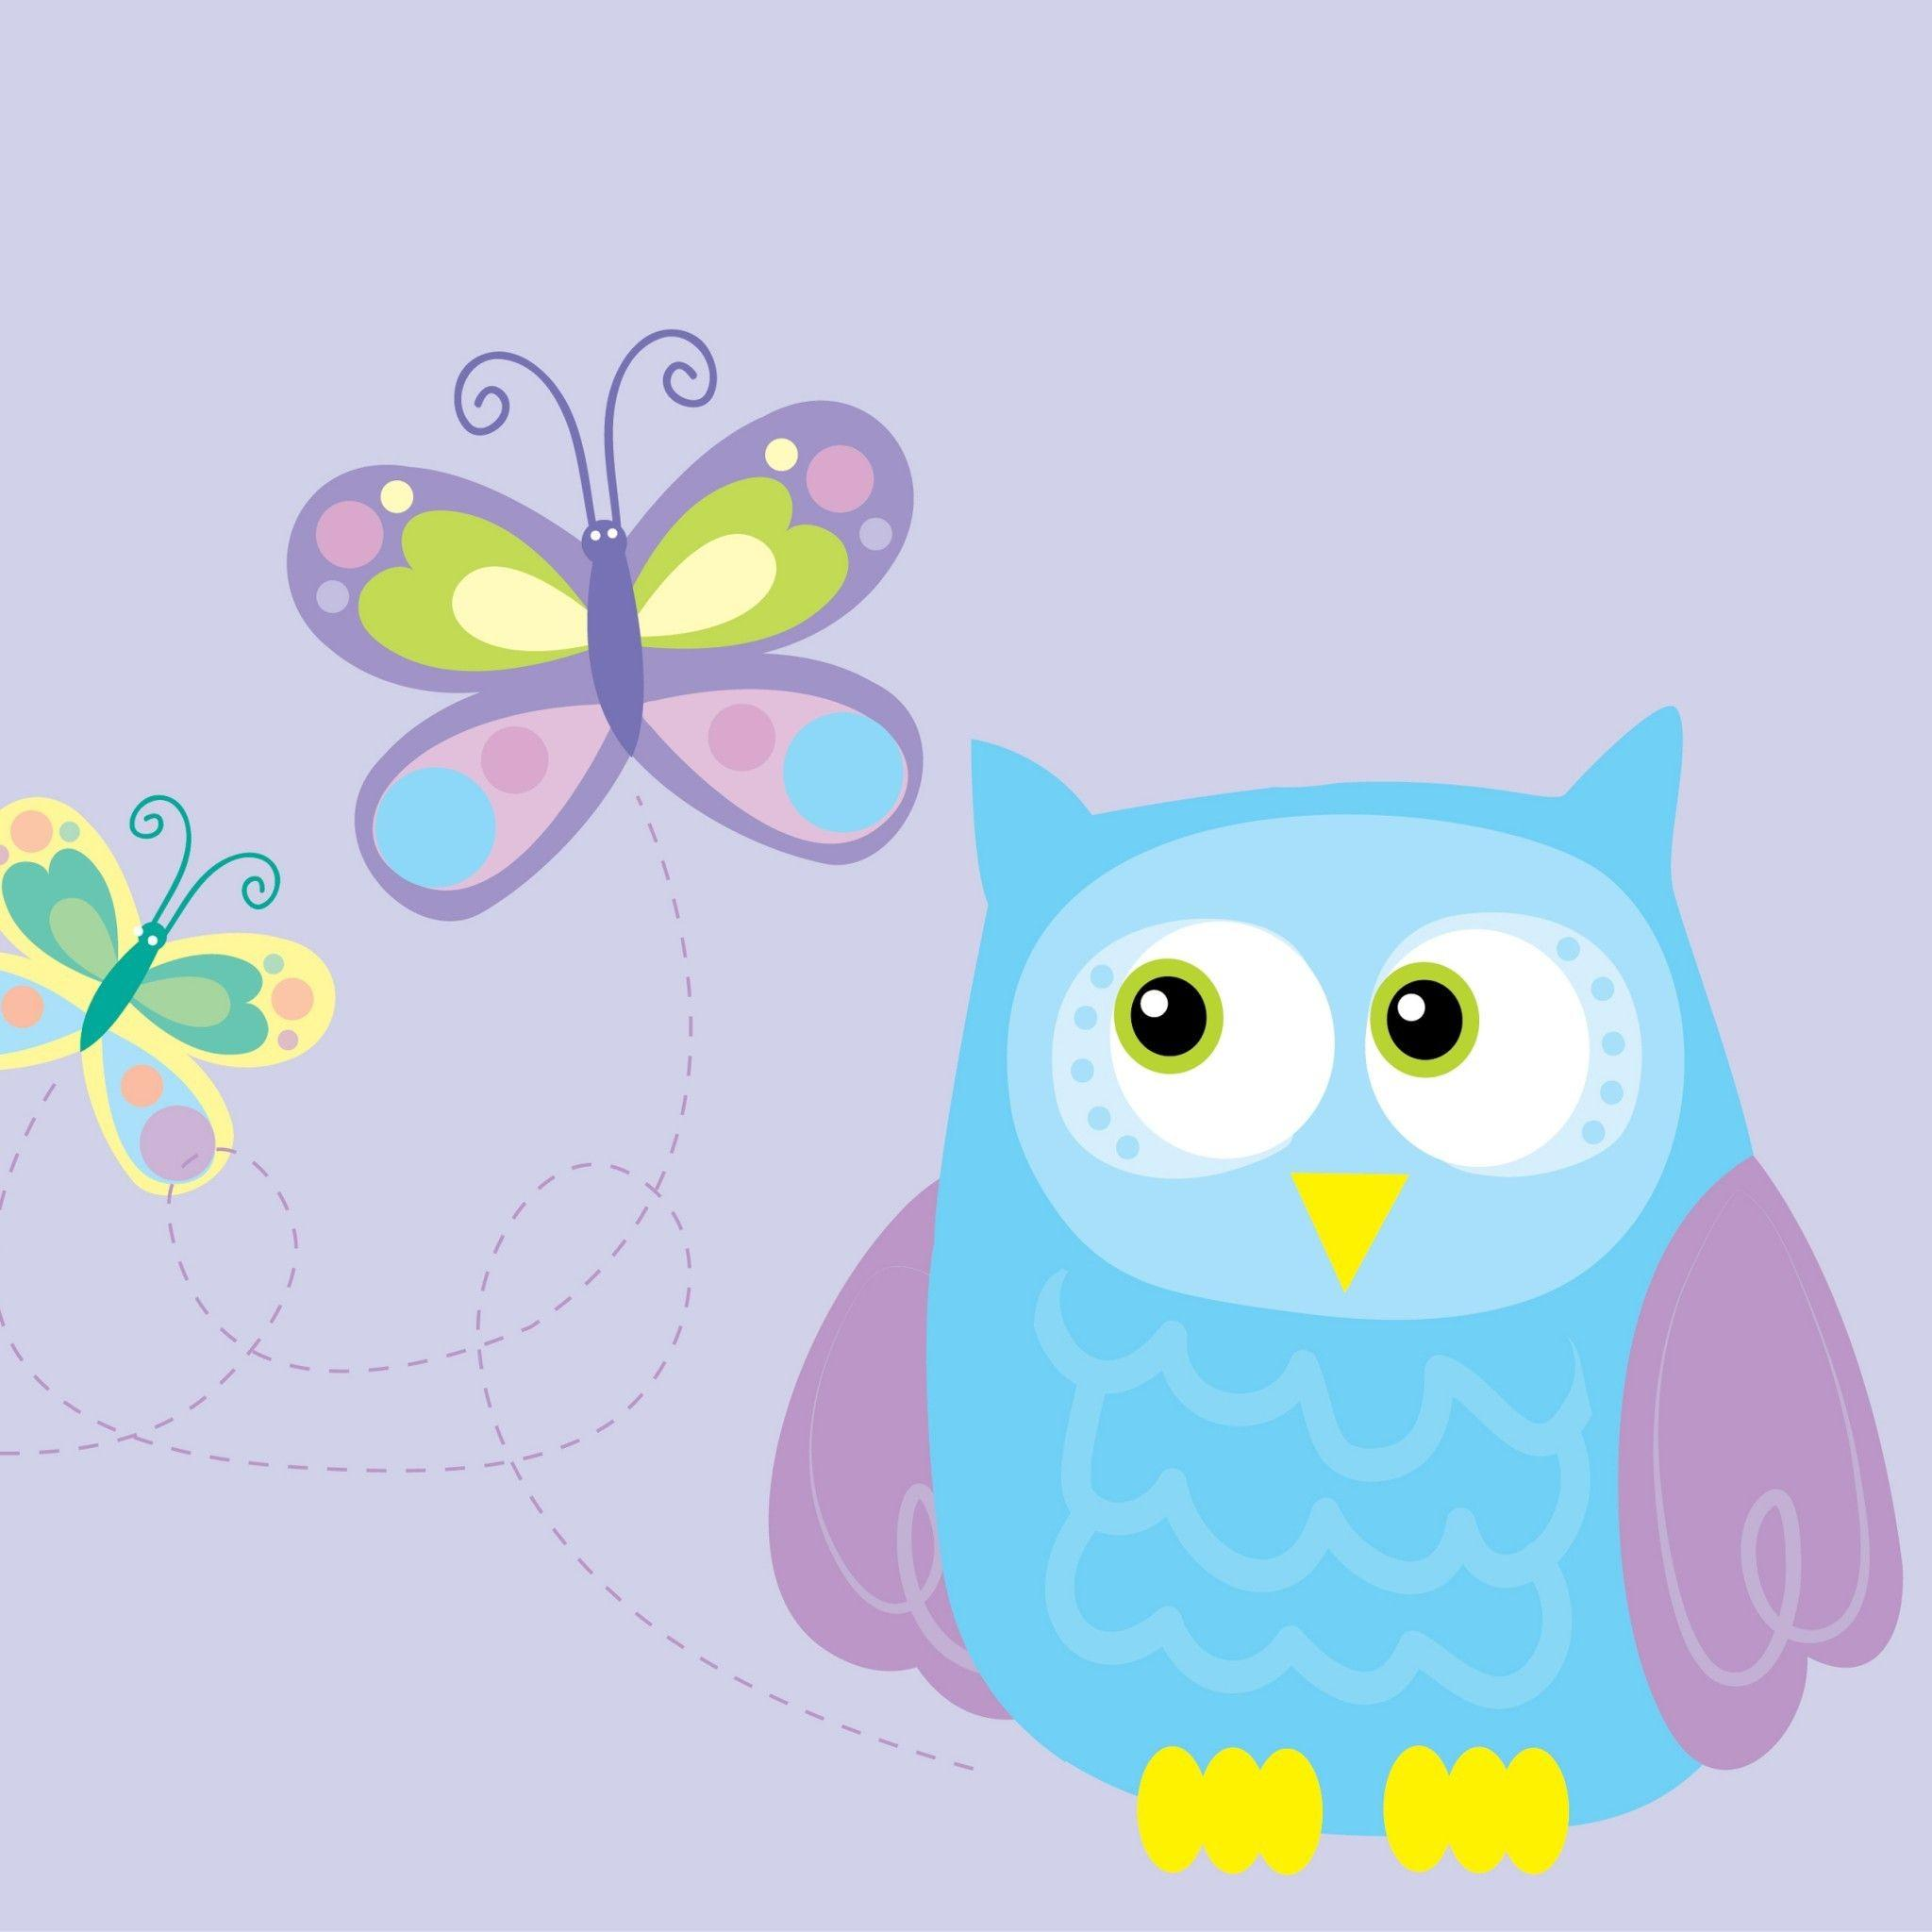 Owl Cartoon Wallpapers - Wallpaper Cave